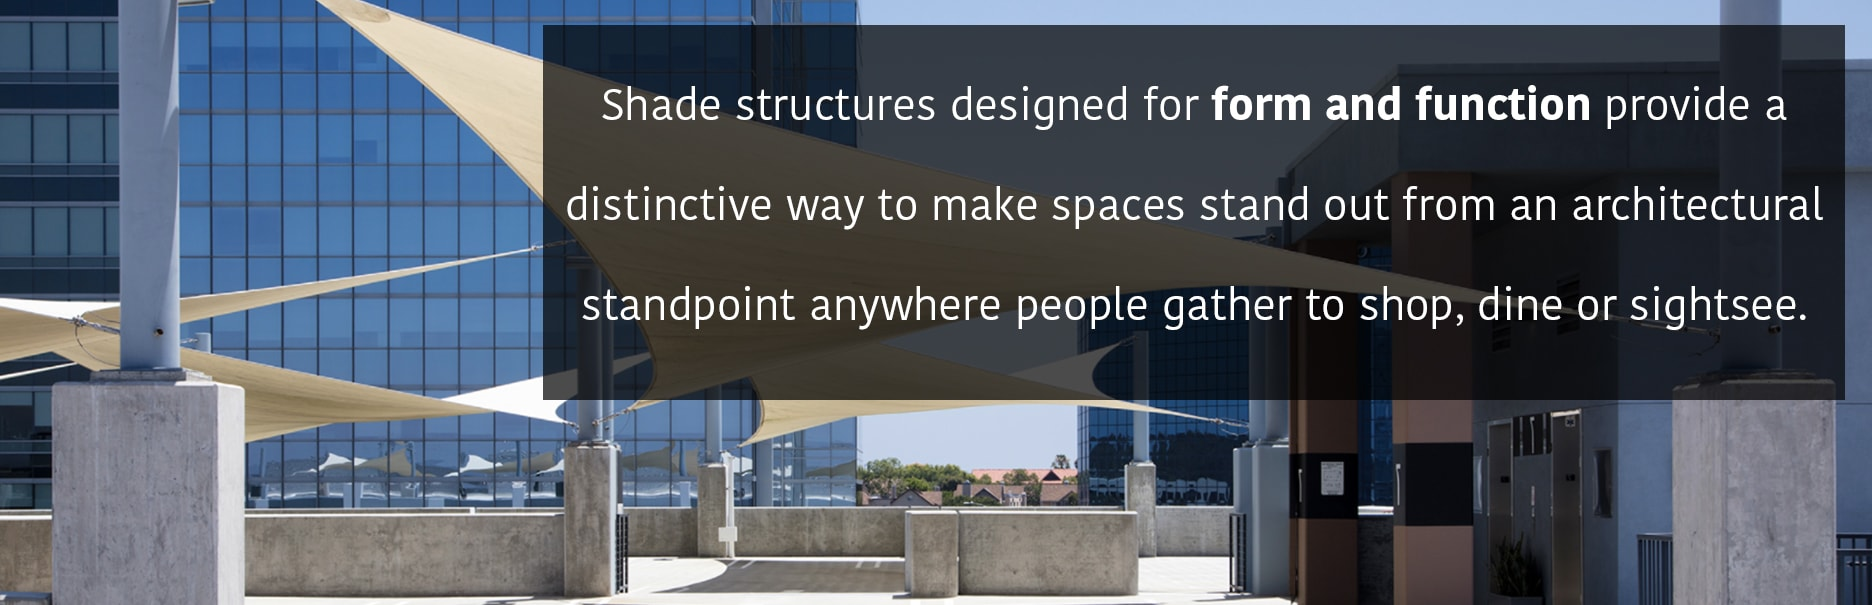 Shade Structures for Form and Function